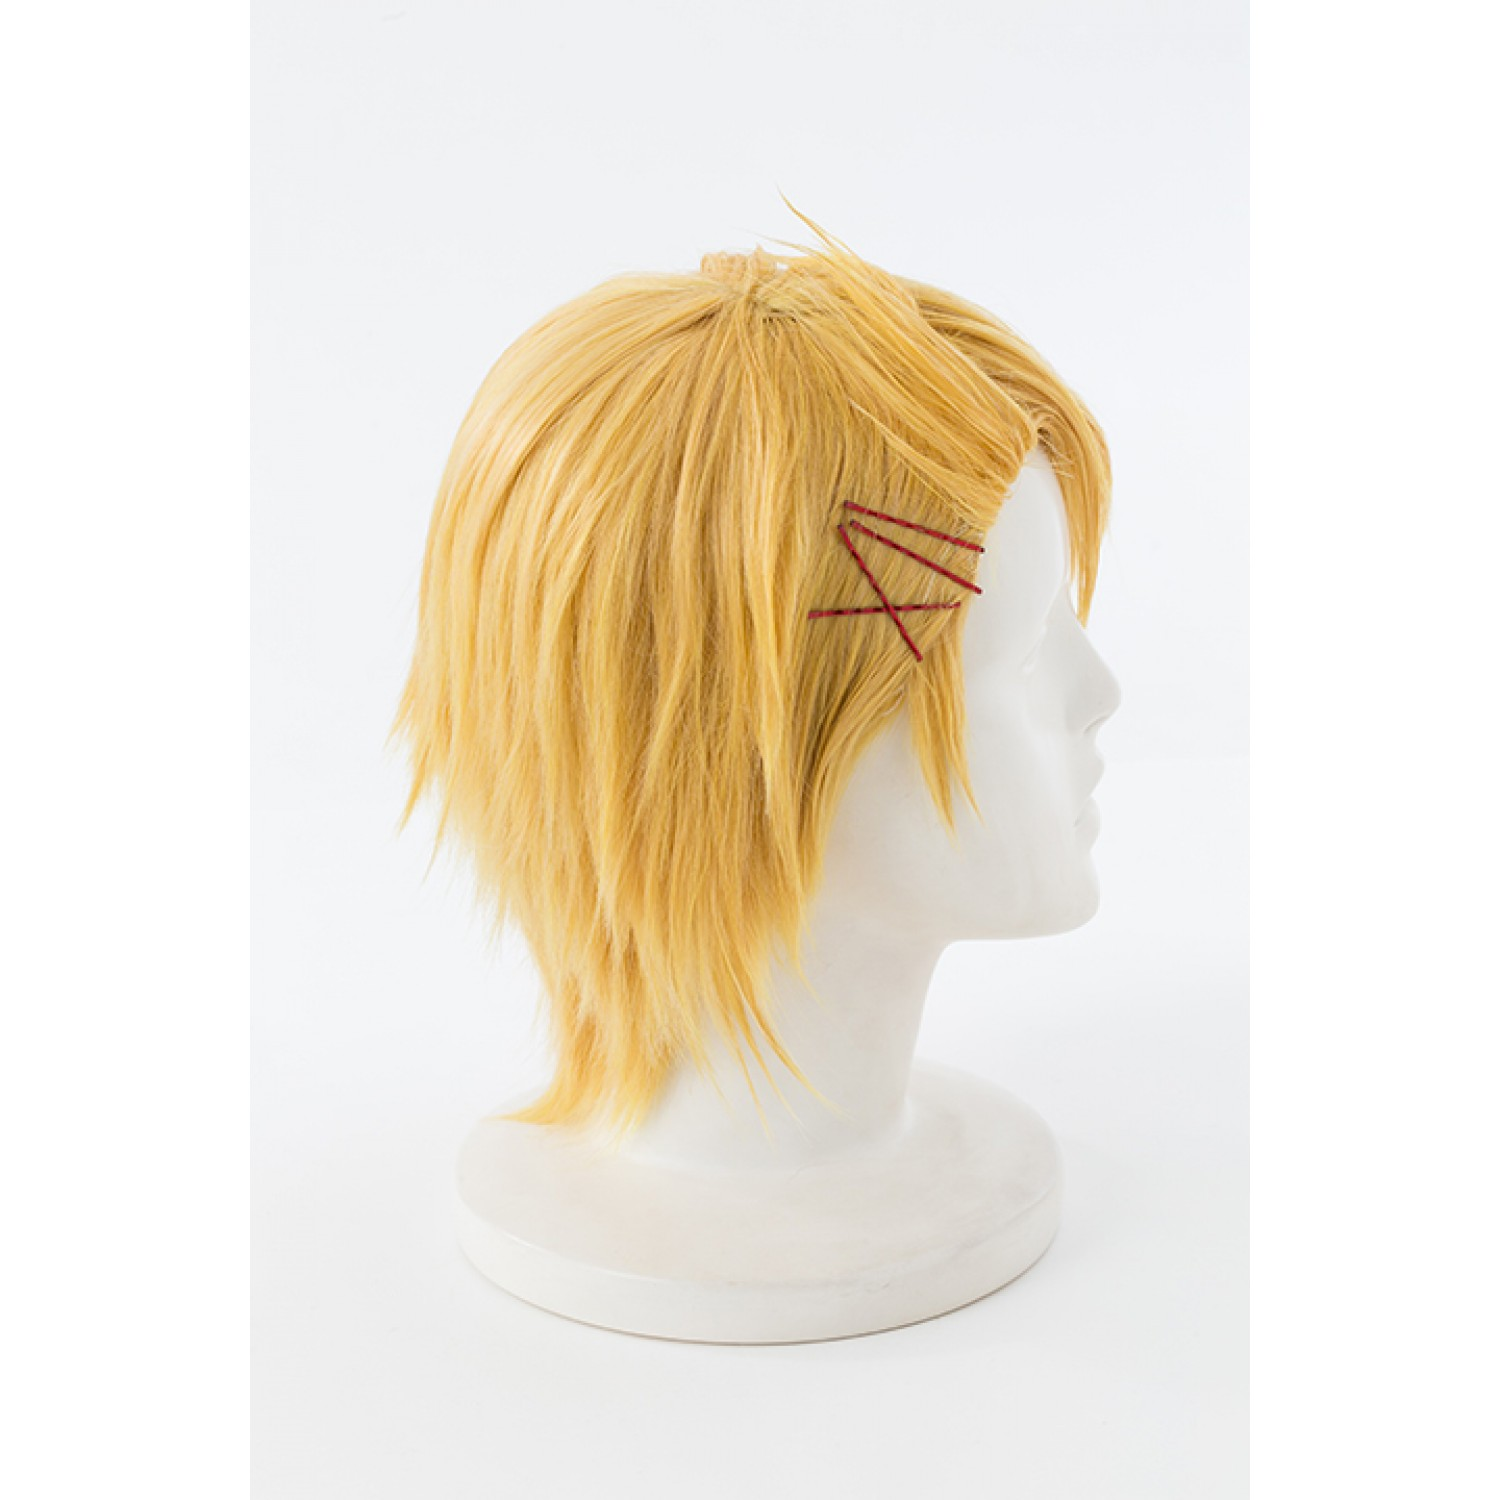 Cosplay wig for Uta No Prince-Sama Kurusu Syo